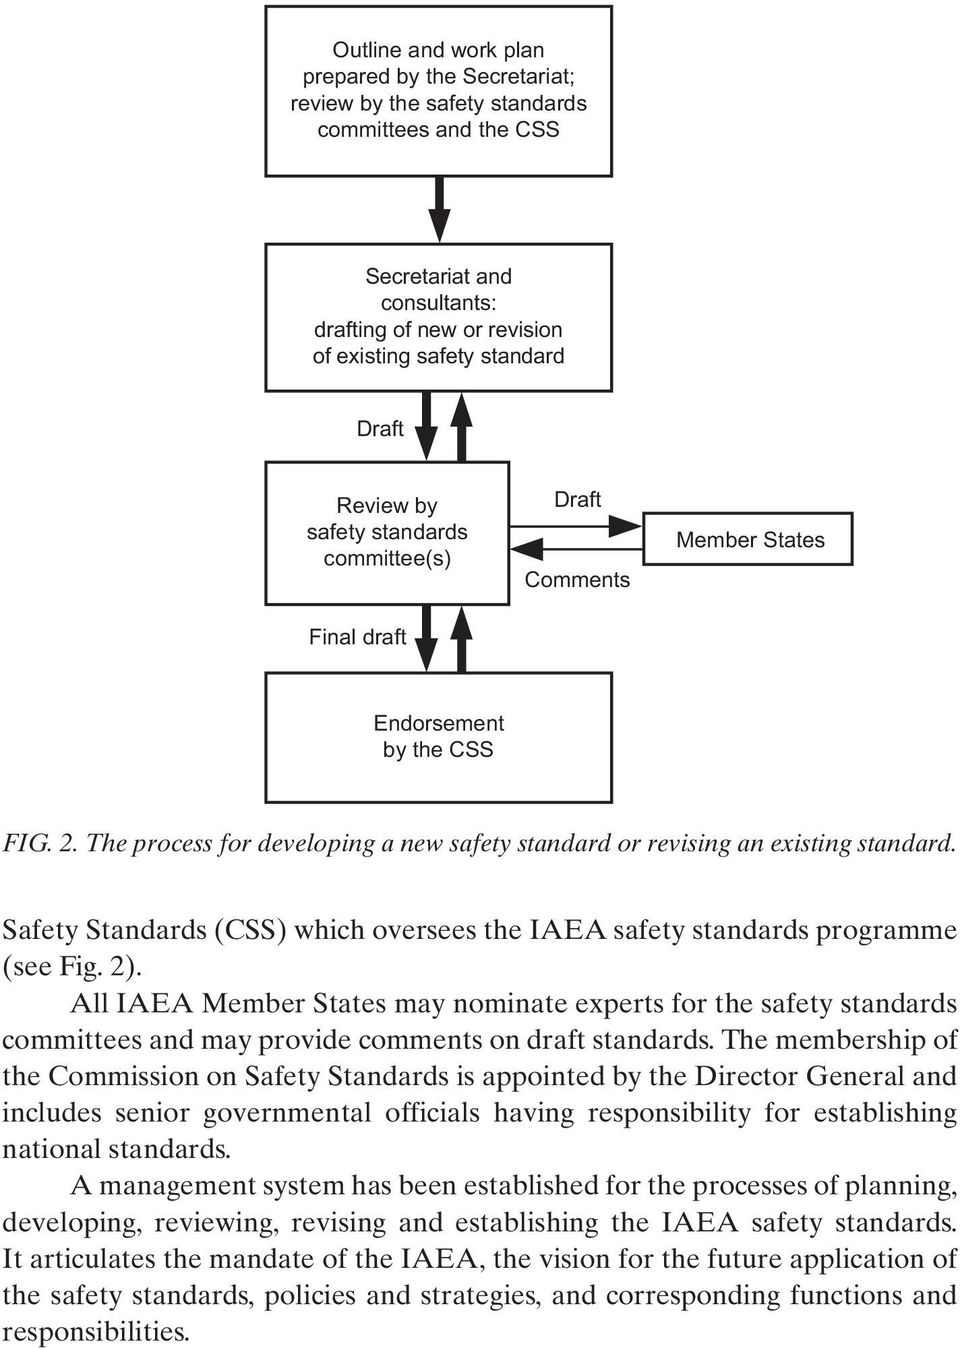 Safety Standards (CSS) which oversees the IAEA safety standards programme (see Fig. 2).